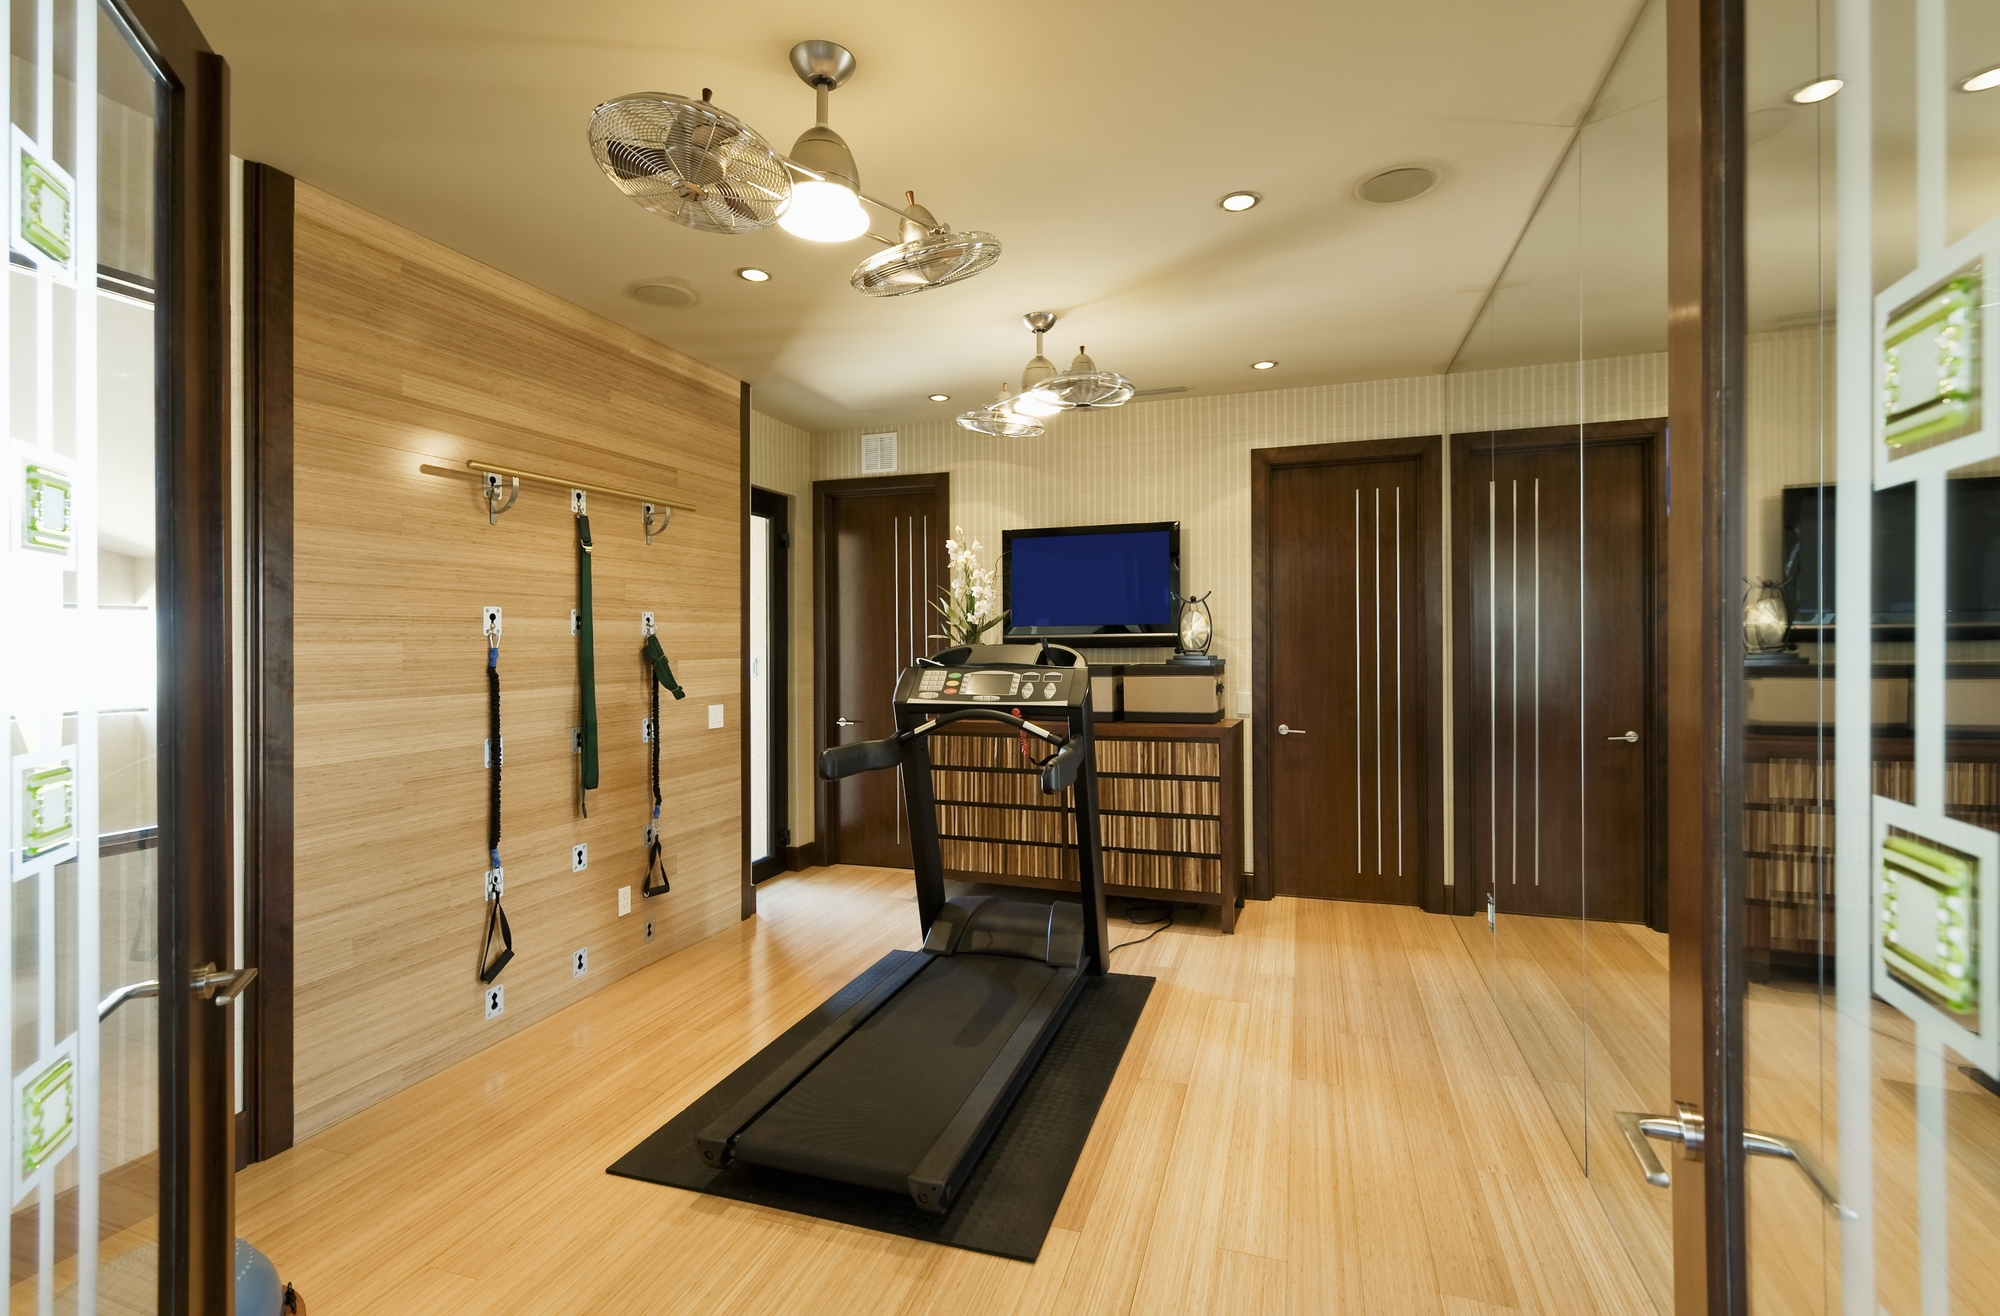 snug harbor a huge mirror soft gray walls soft gray carpet and recessed lighting create a cozy place to get in shape while a mounted tv and modern